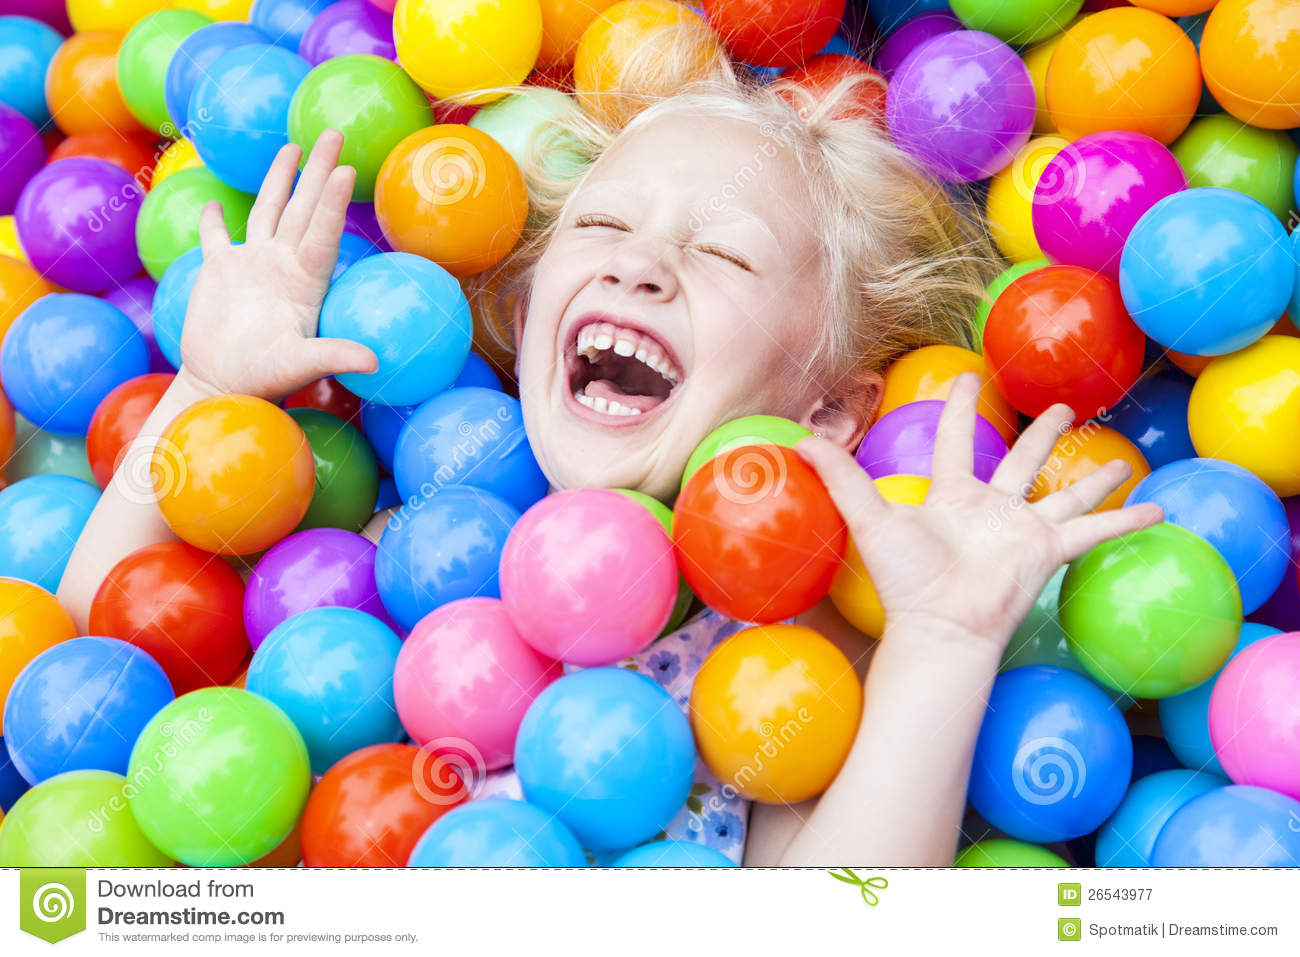 ... Free Stock Photography: Girl Child Having Fun Playing in Colored Balls Happy Child Clipart